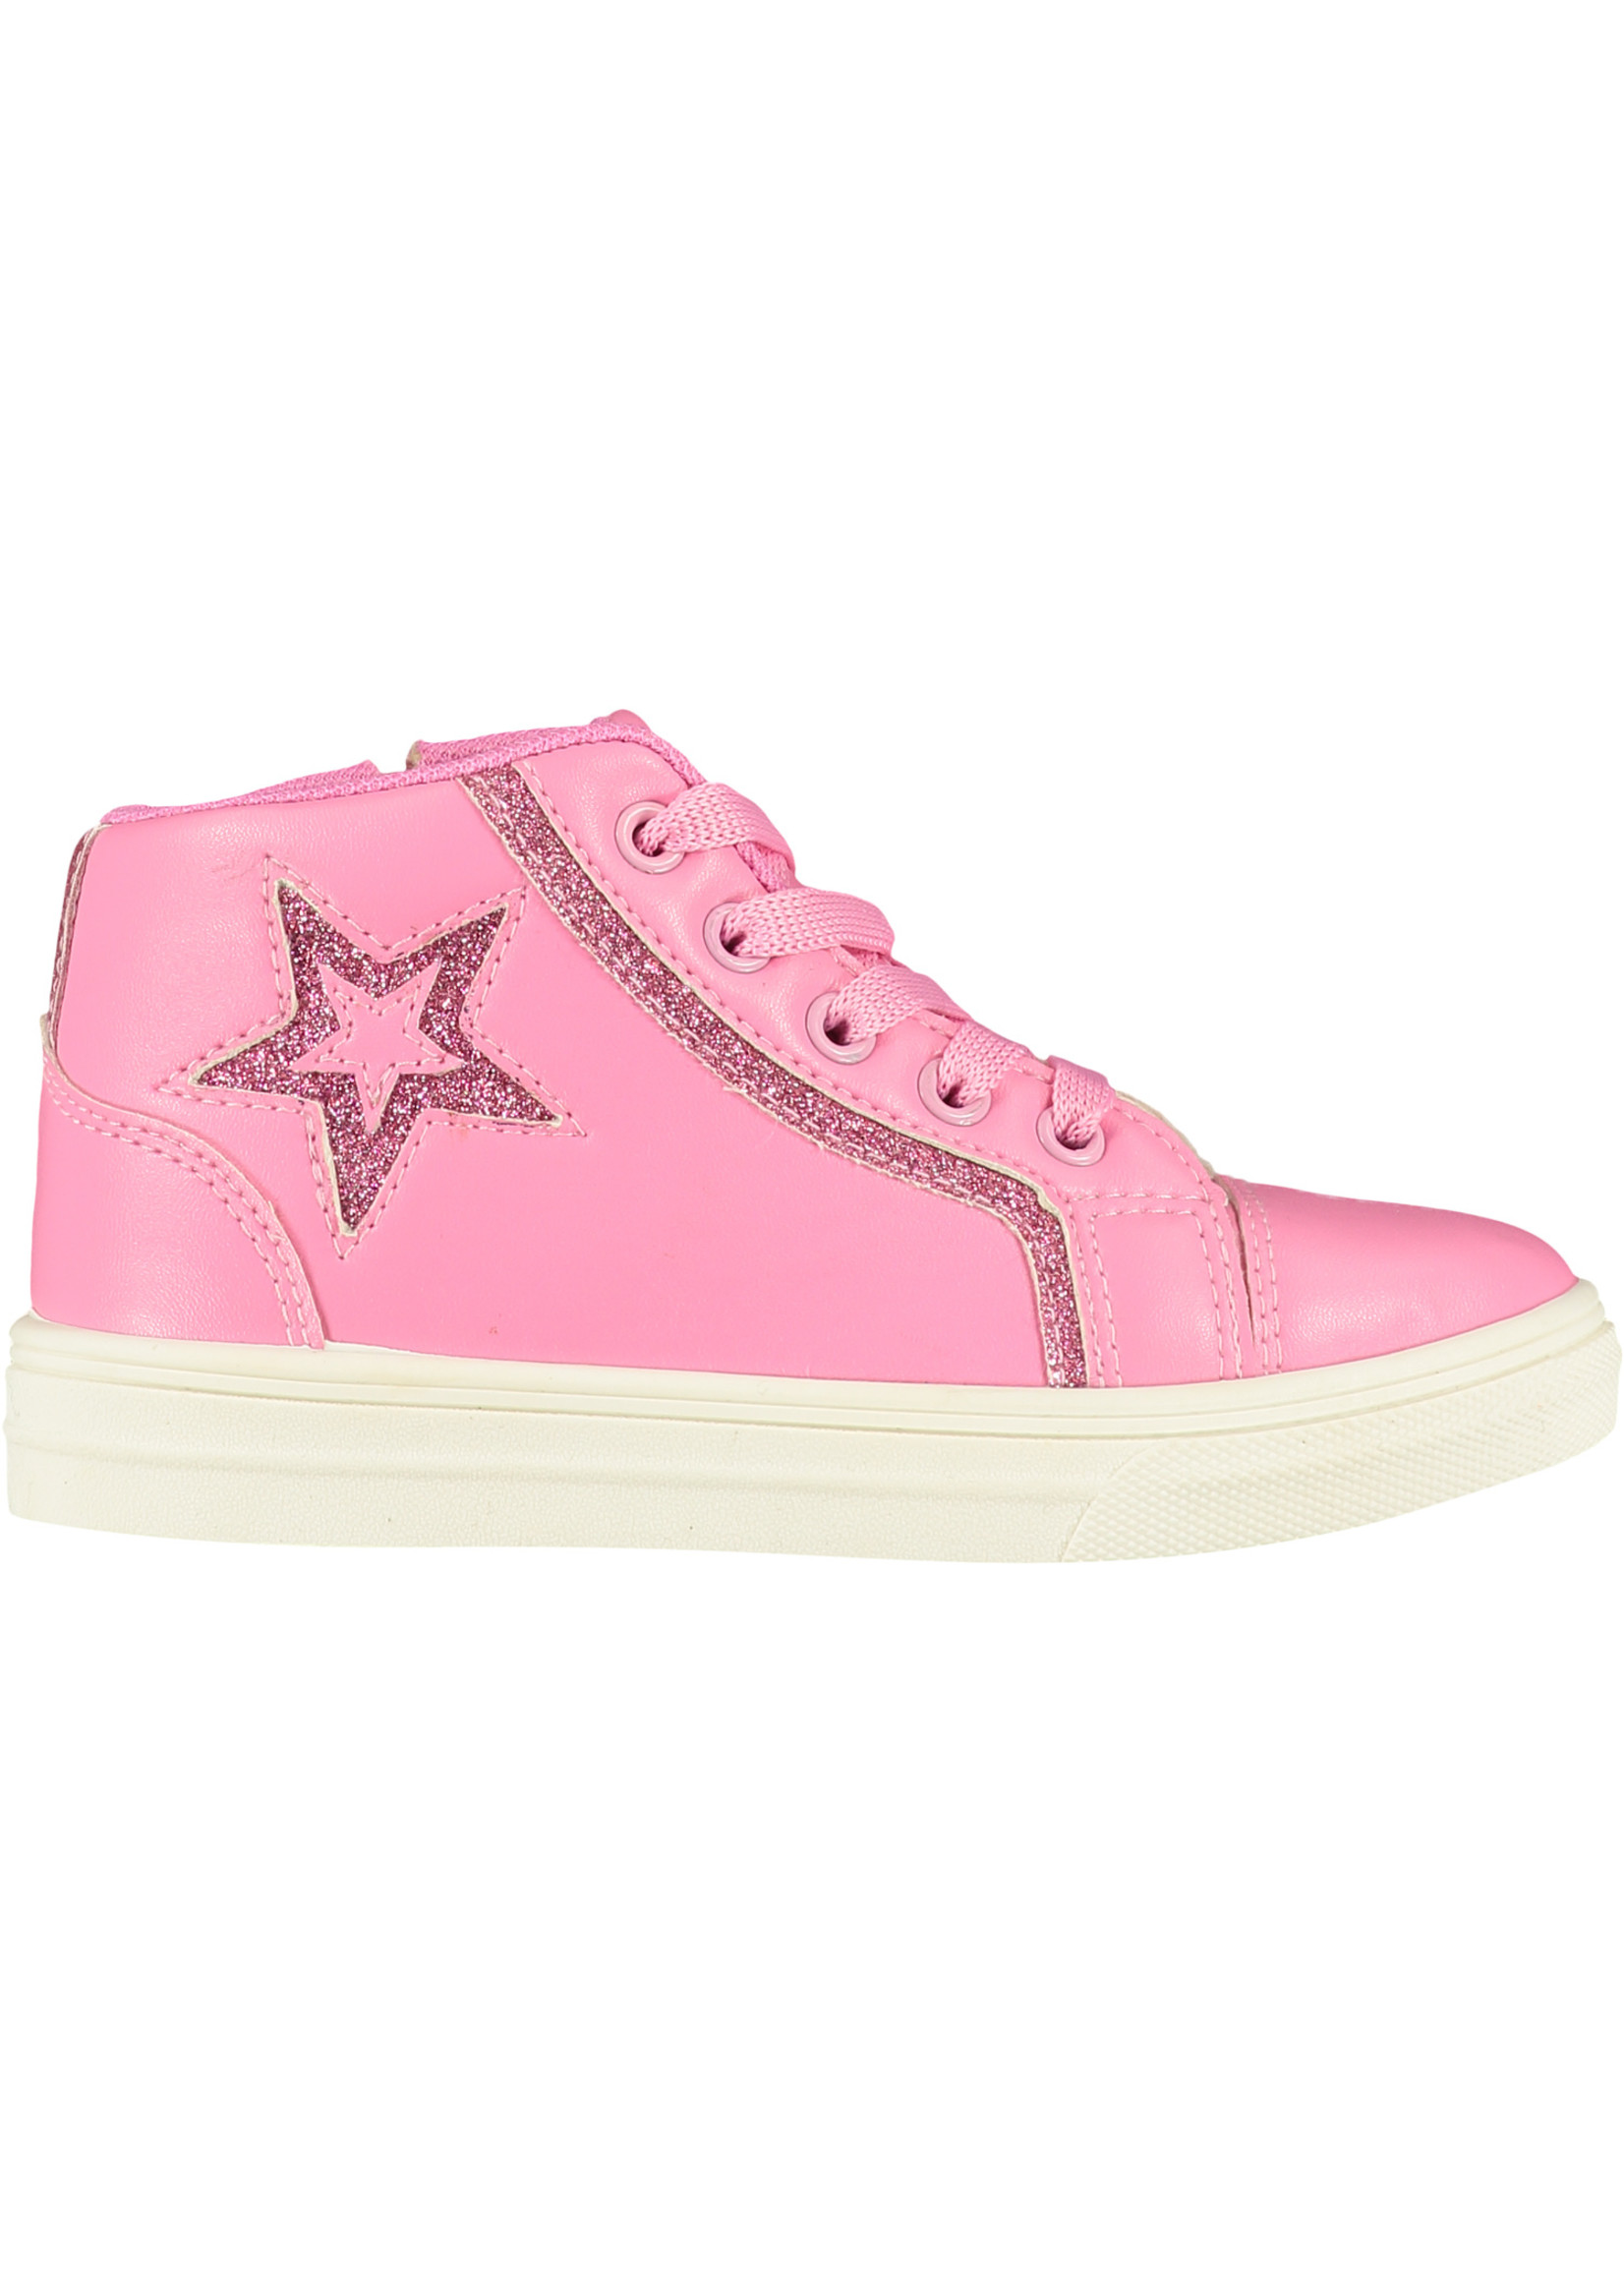 A Dee A Dee STAR Star high top trainer Pink Candy